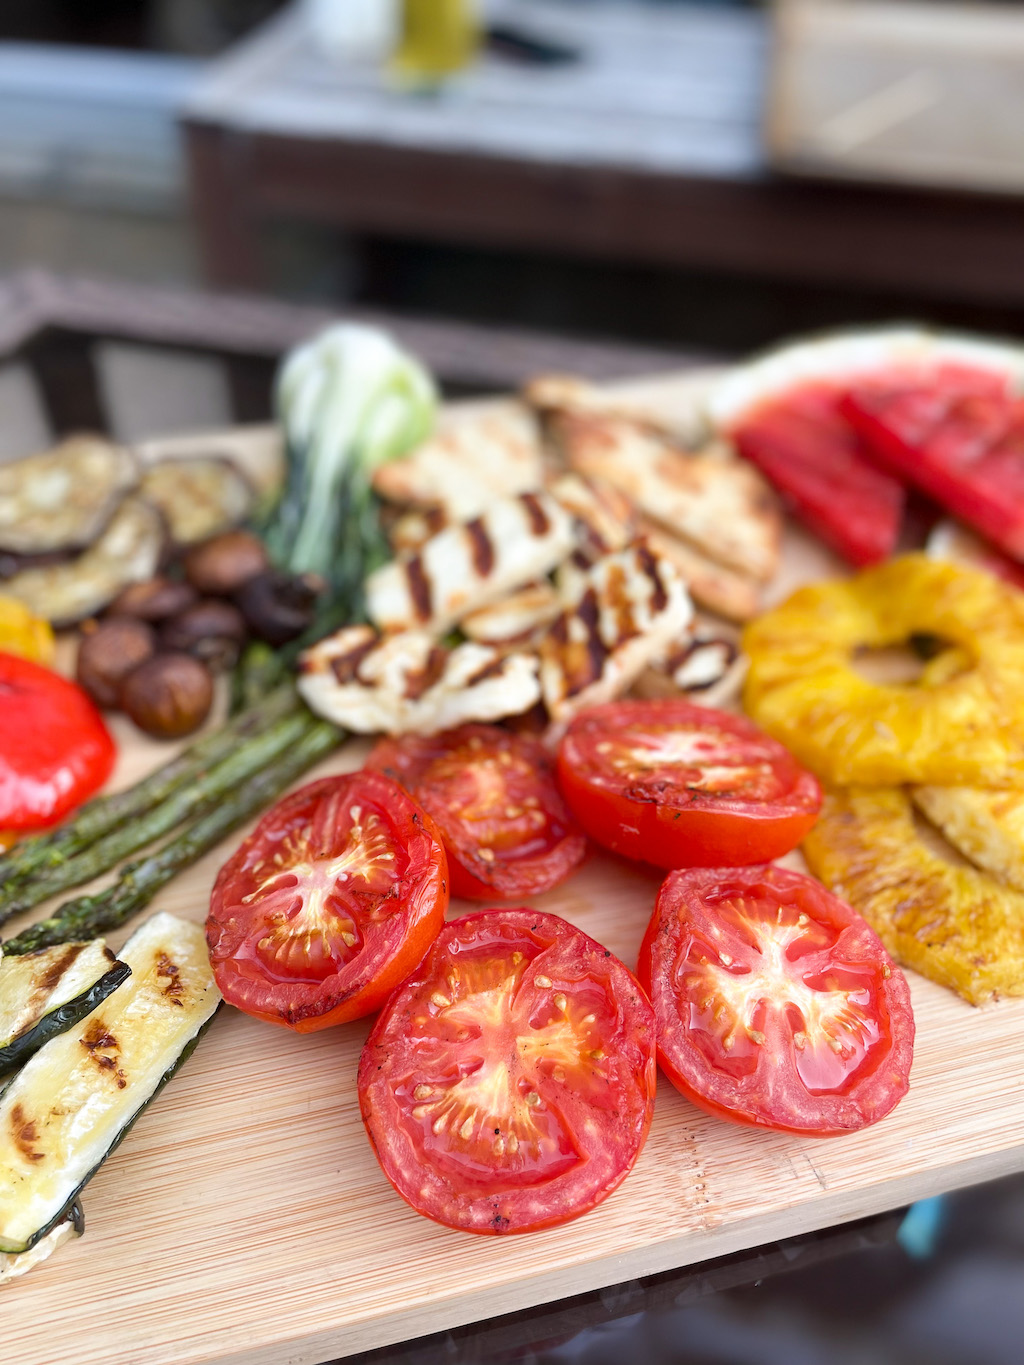 Best Grilling Items